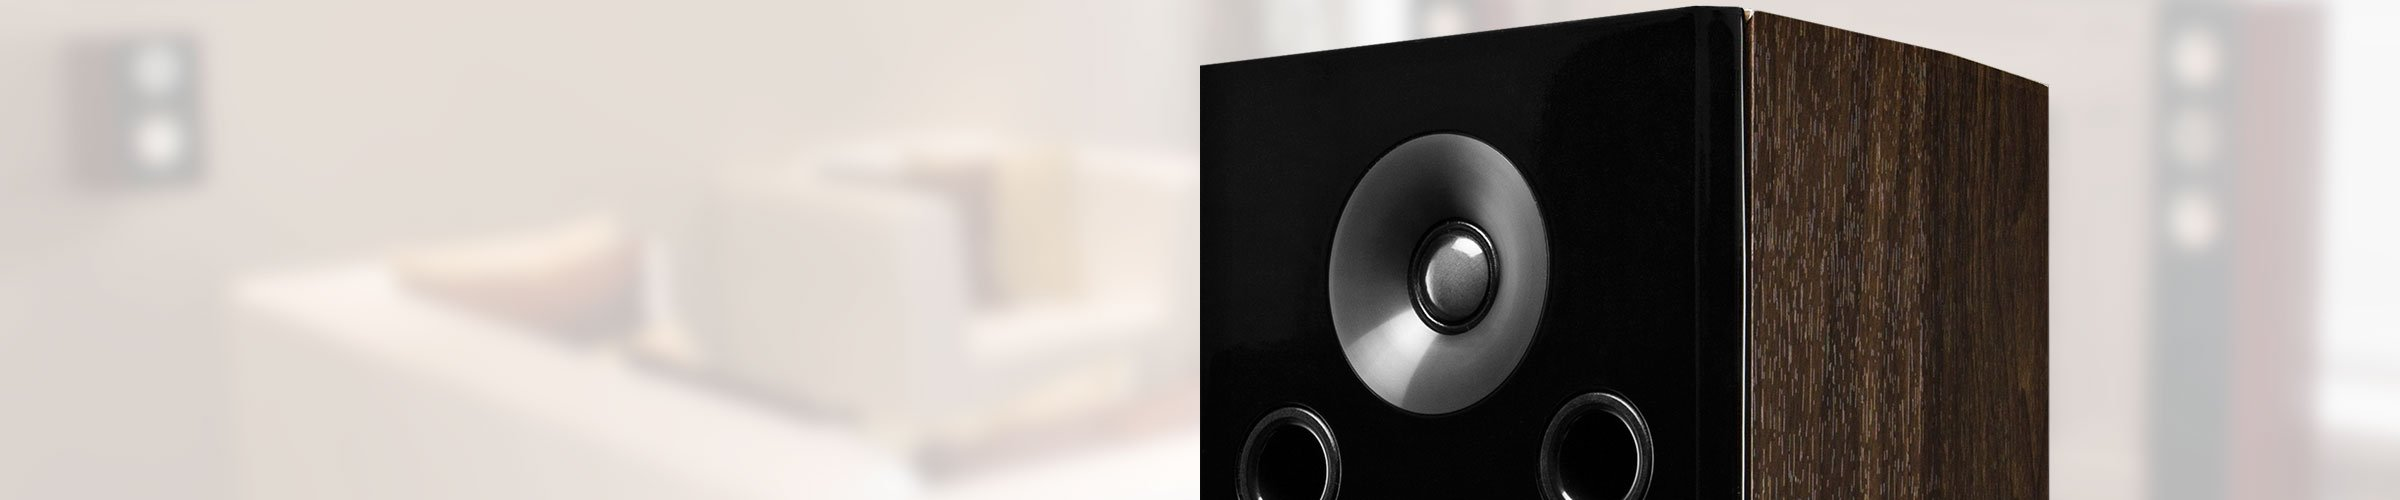 Fluance signature series surround sound speakers tweeters